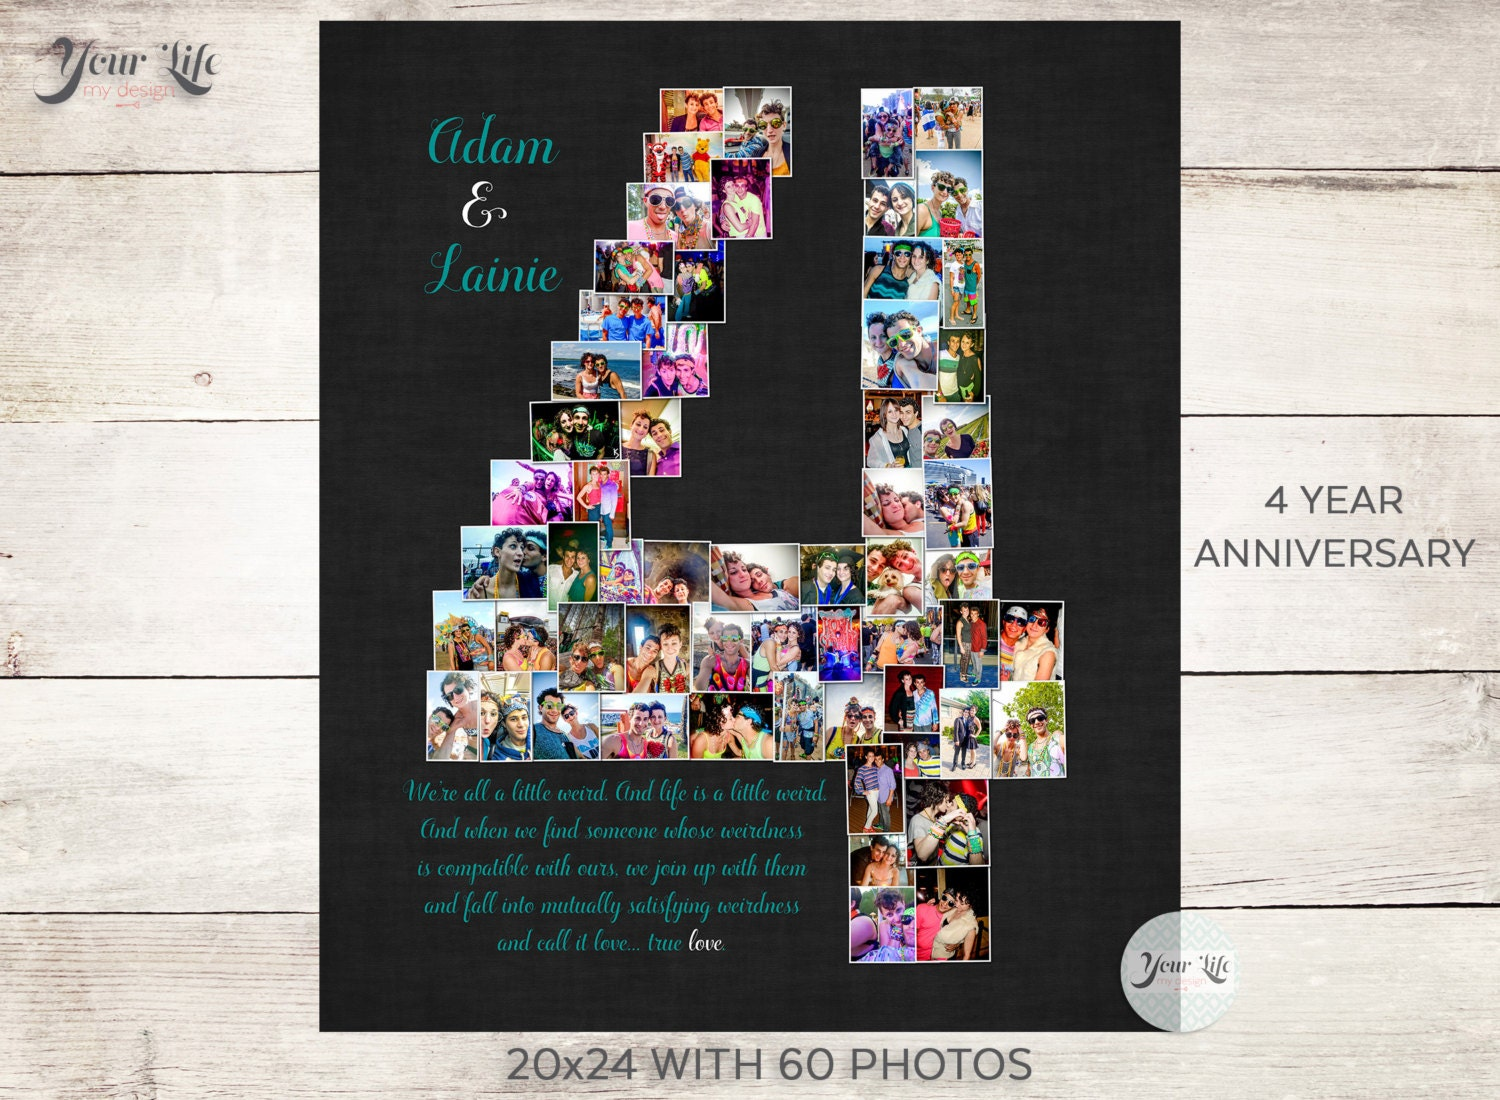 4th Wedding Anniversary Gifts For Husband: 4 YEAR ANNIVERSARY 4th Anniversary Gift Photo Collage 4th